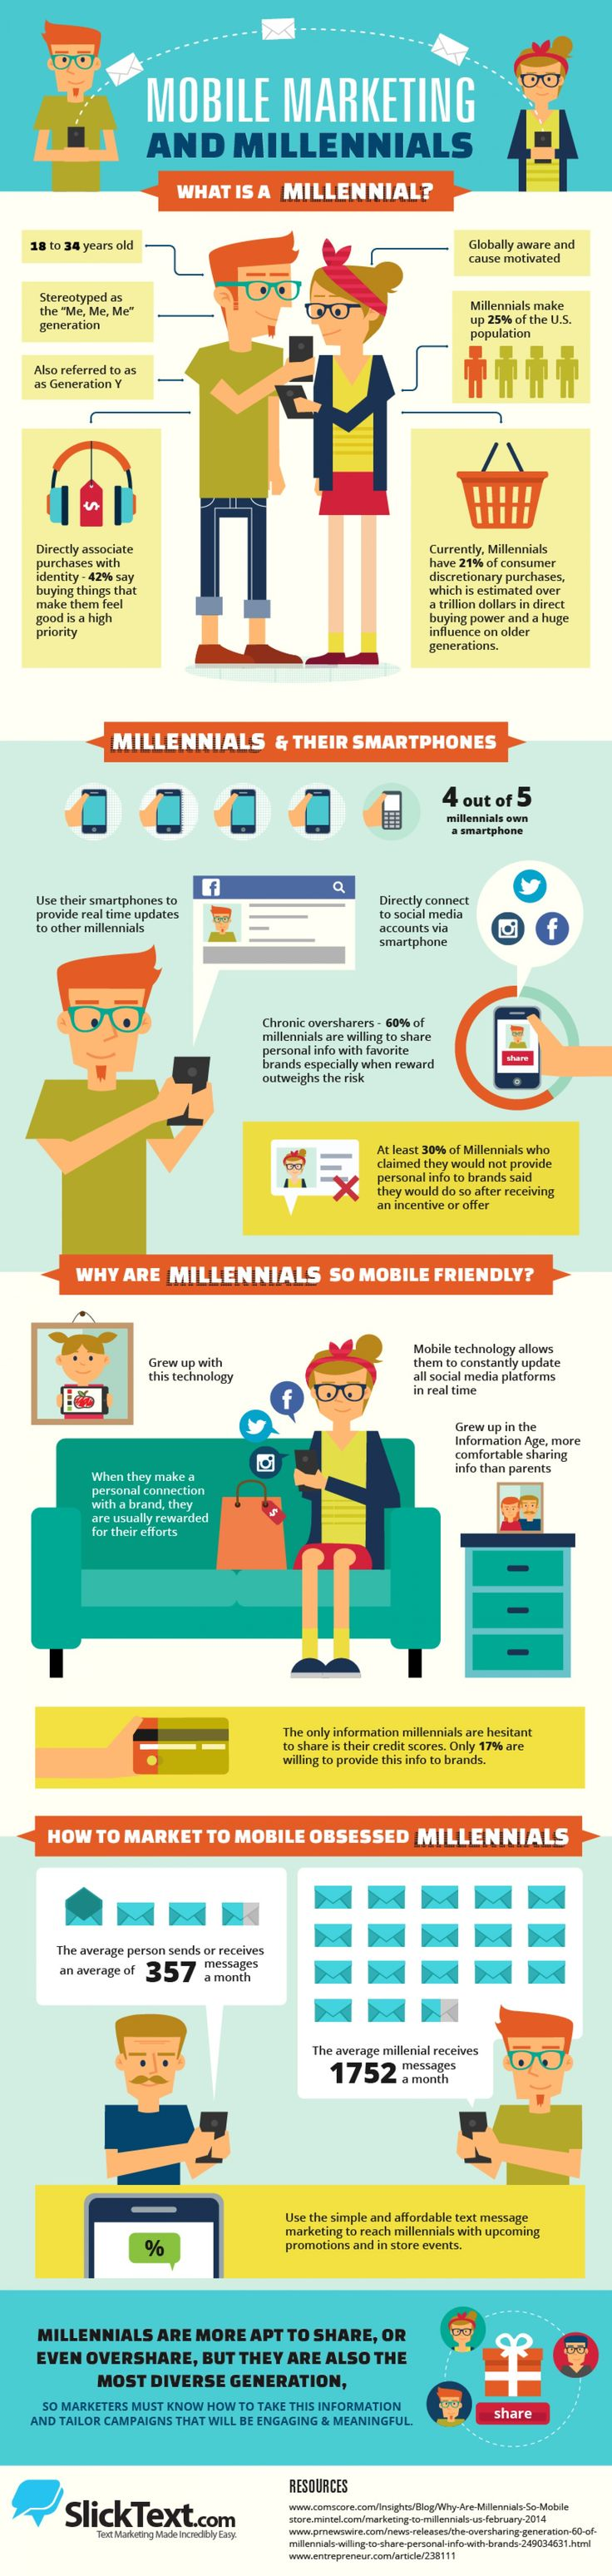 https://social-media-strategy-template.blogspot.com/ This infographic highlights several interesting statistics surrounding mobile marketing and how millennials interact with this medium.